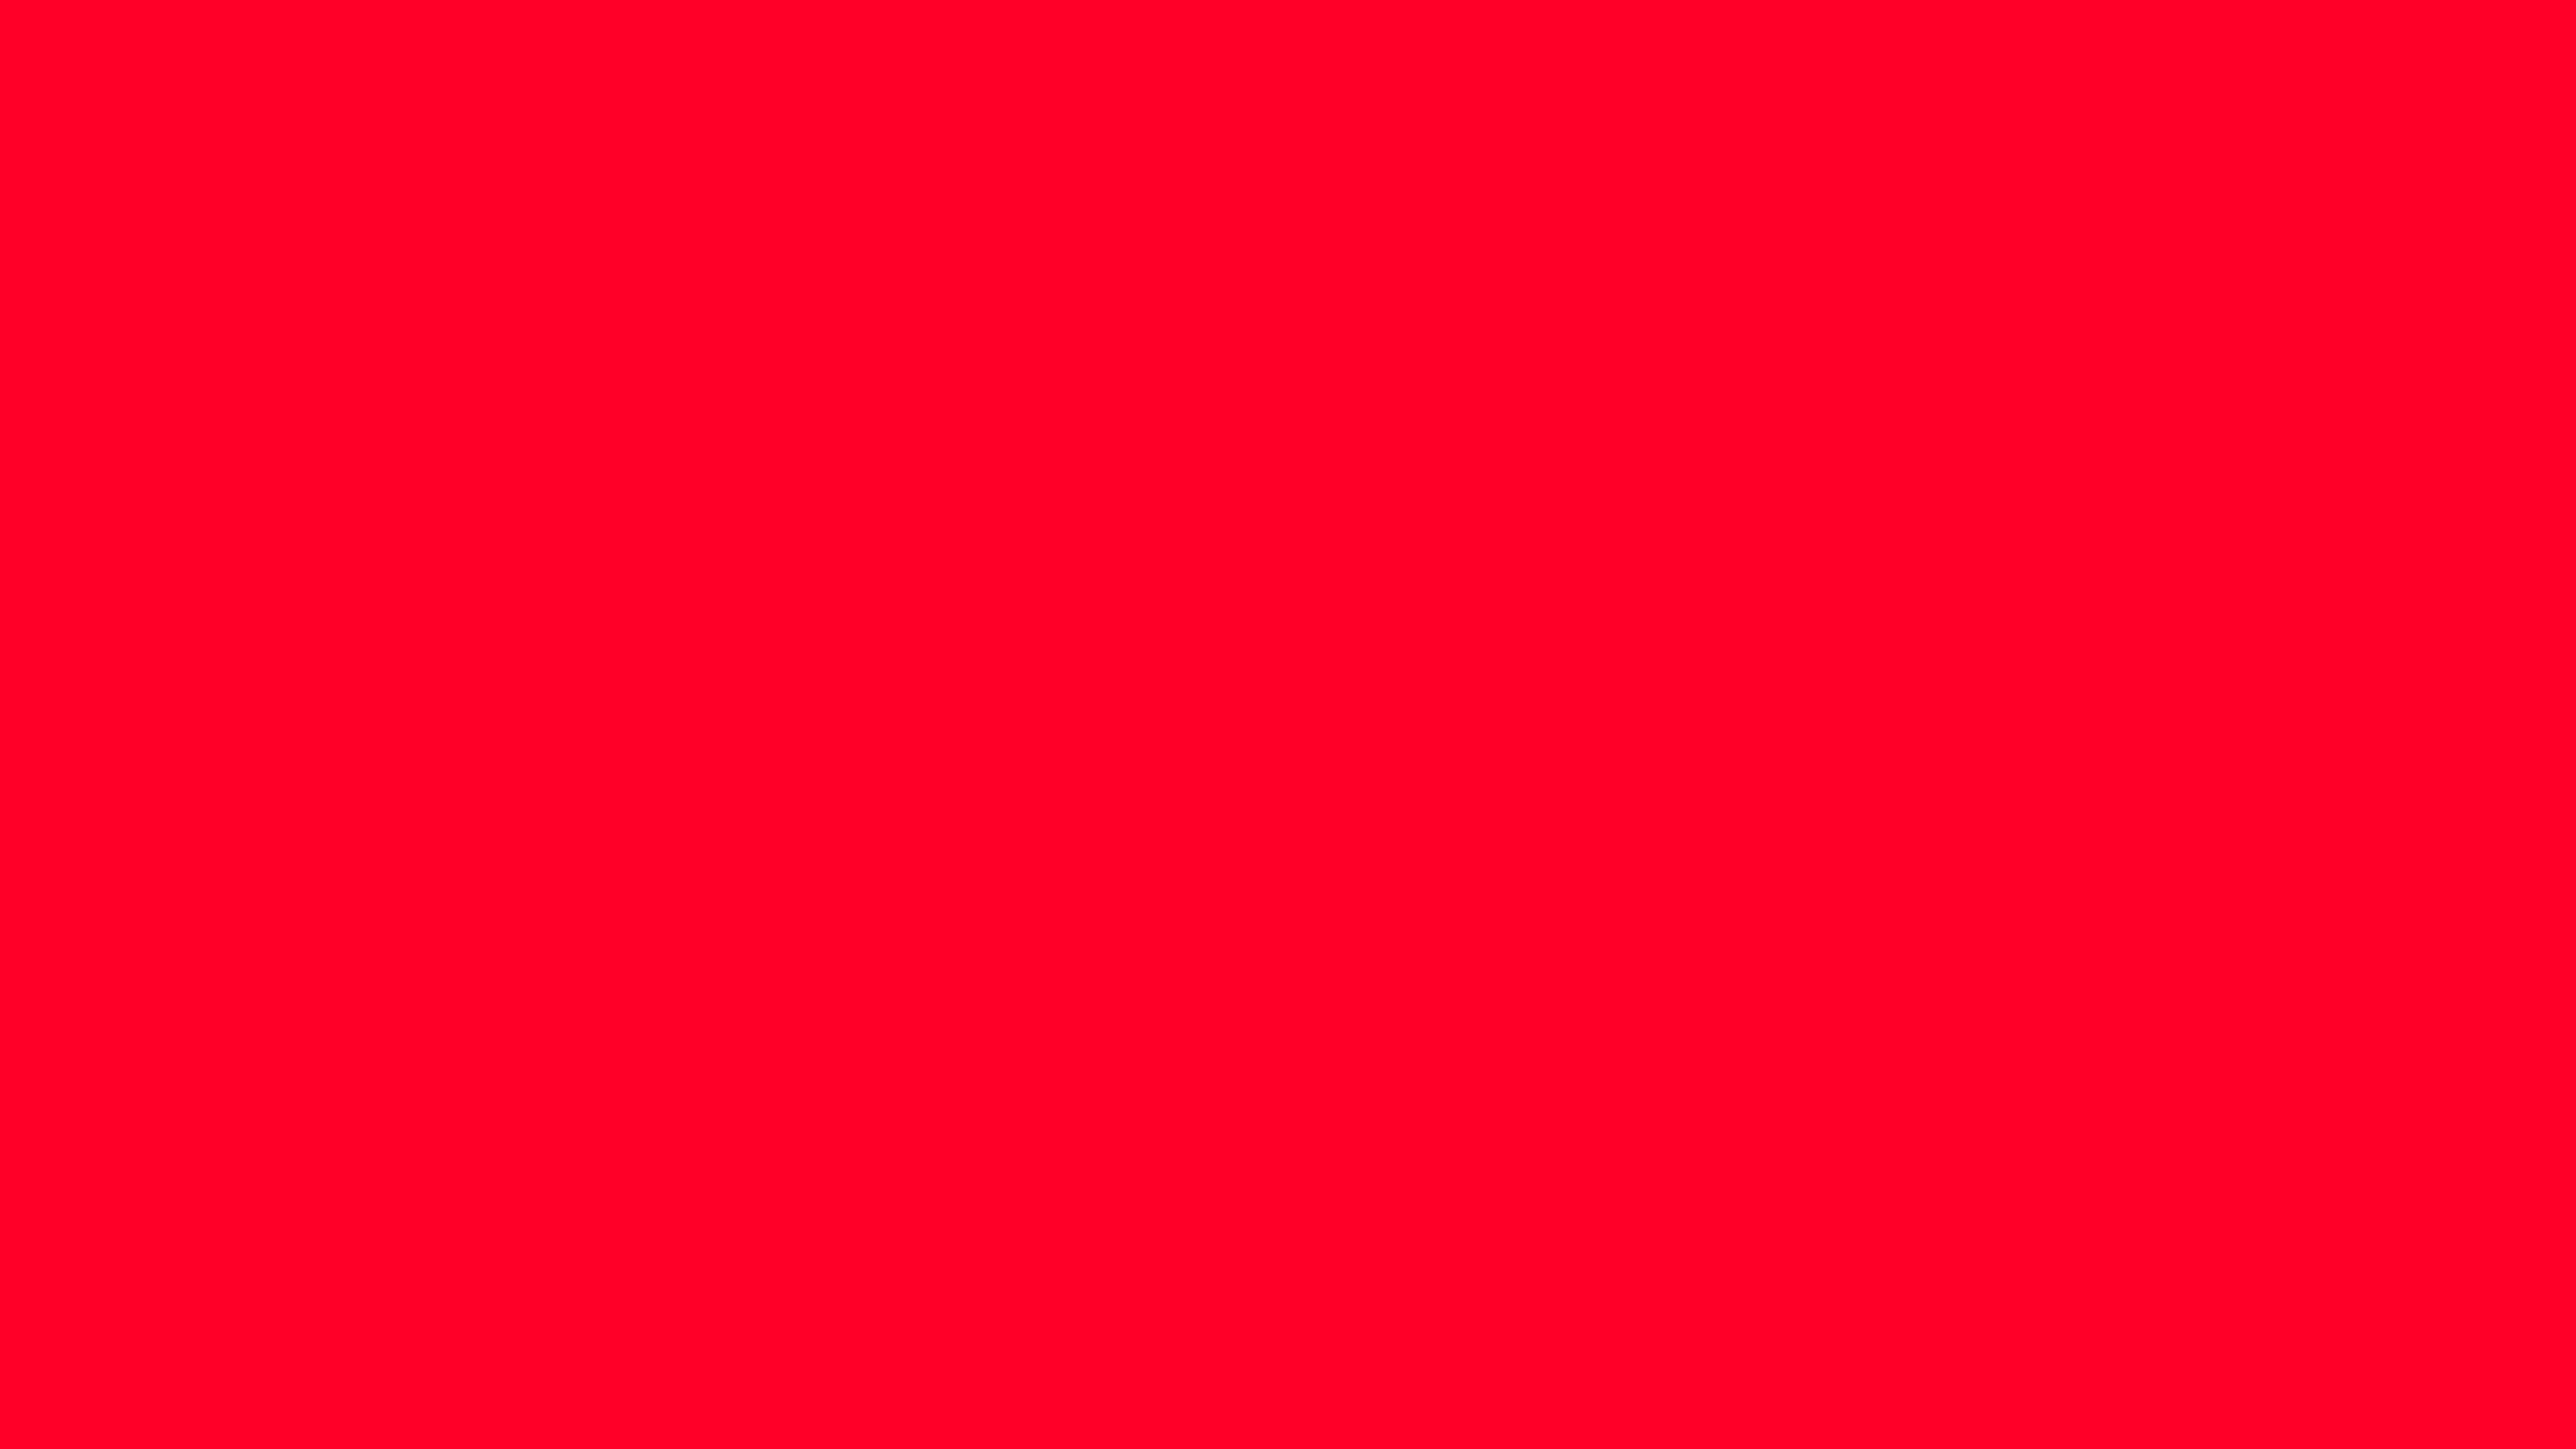 3840x2160 Ruddy Solid Color Background